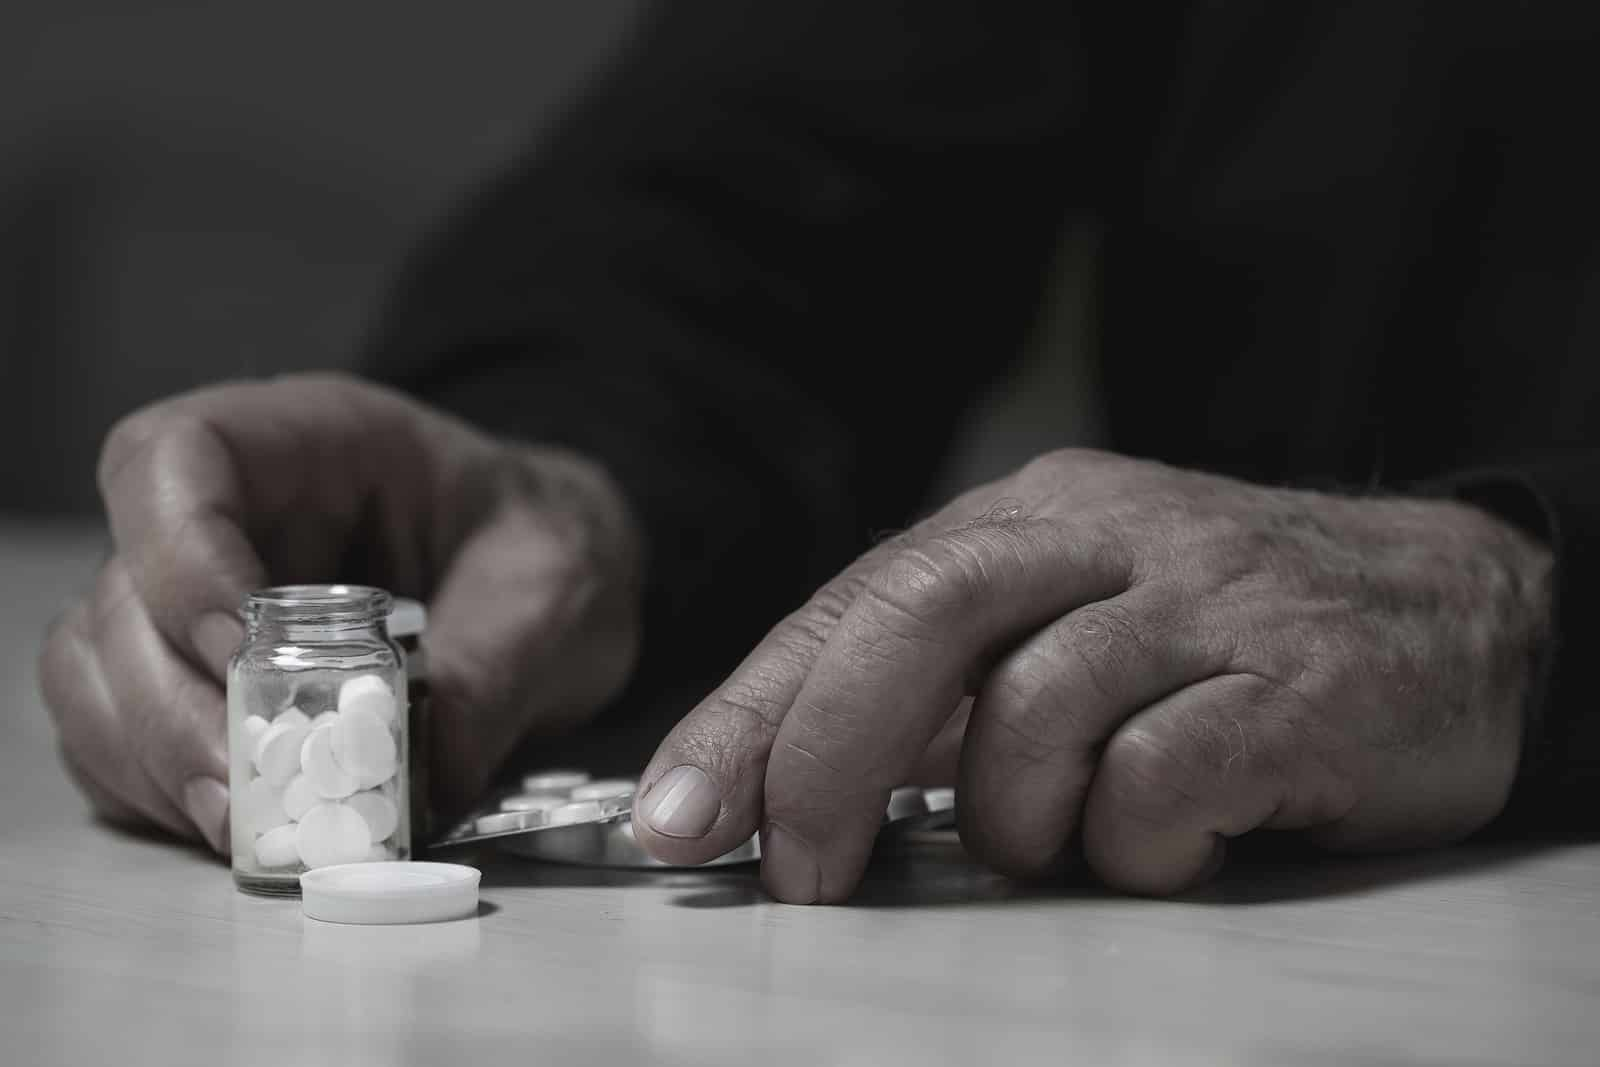 Painkillers: Know the Facts